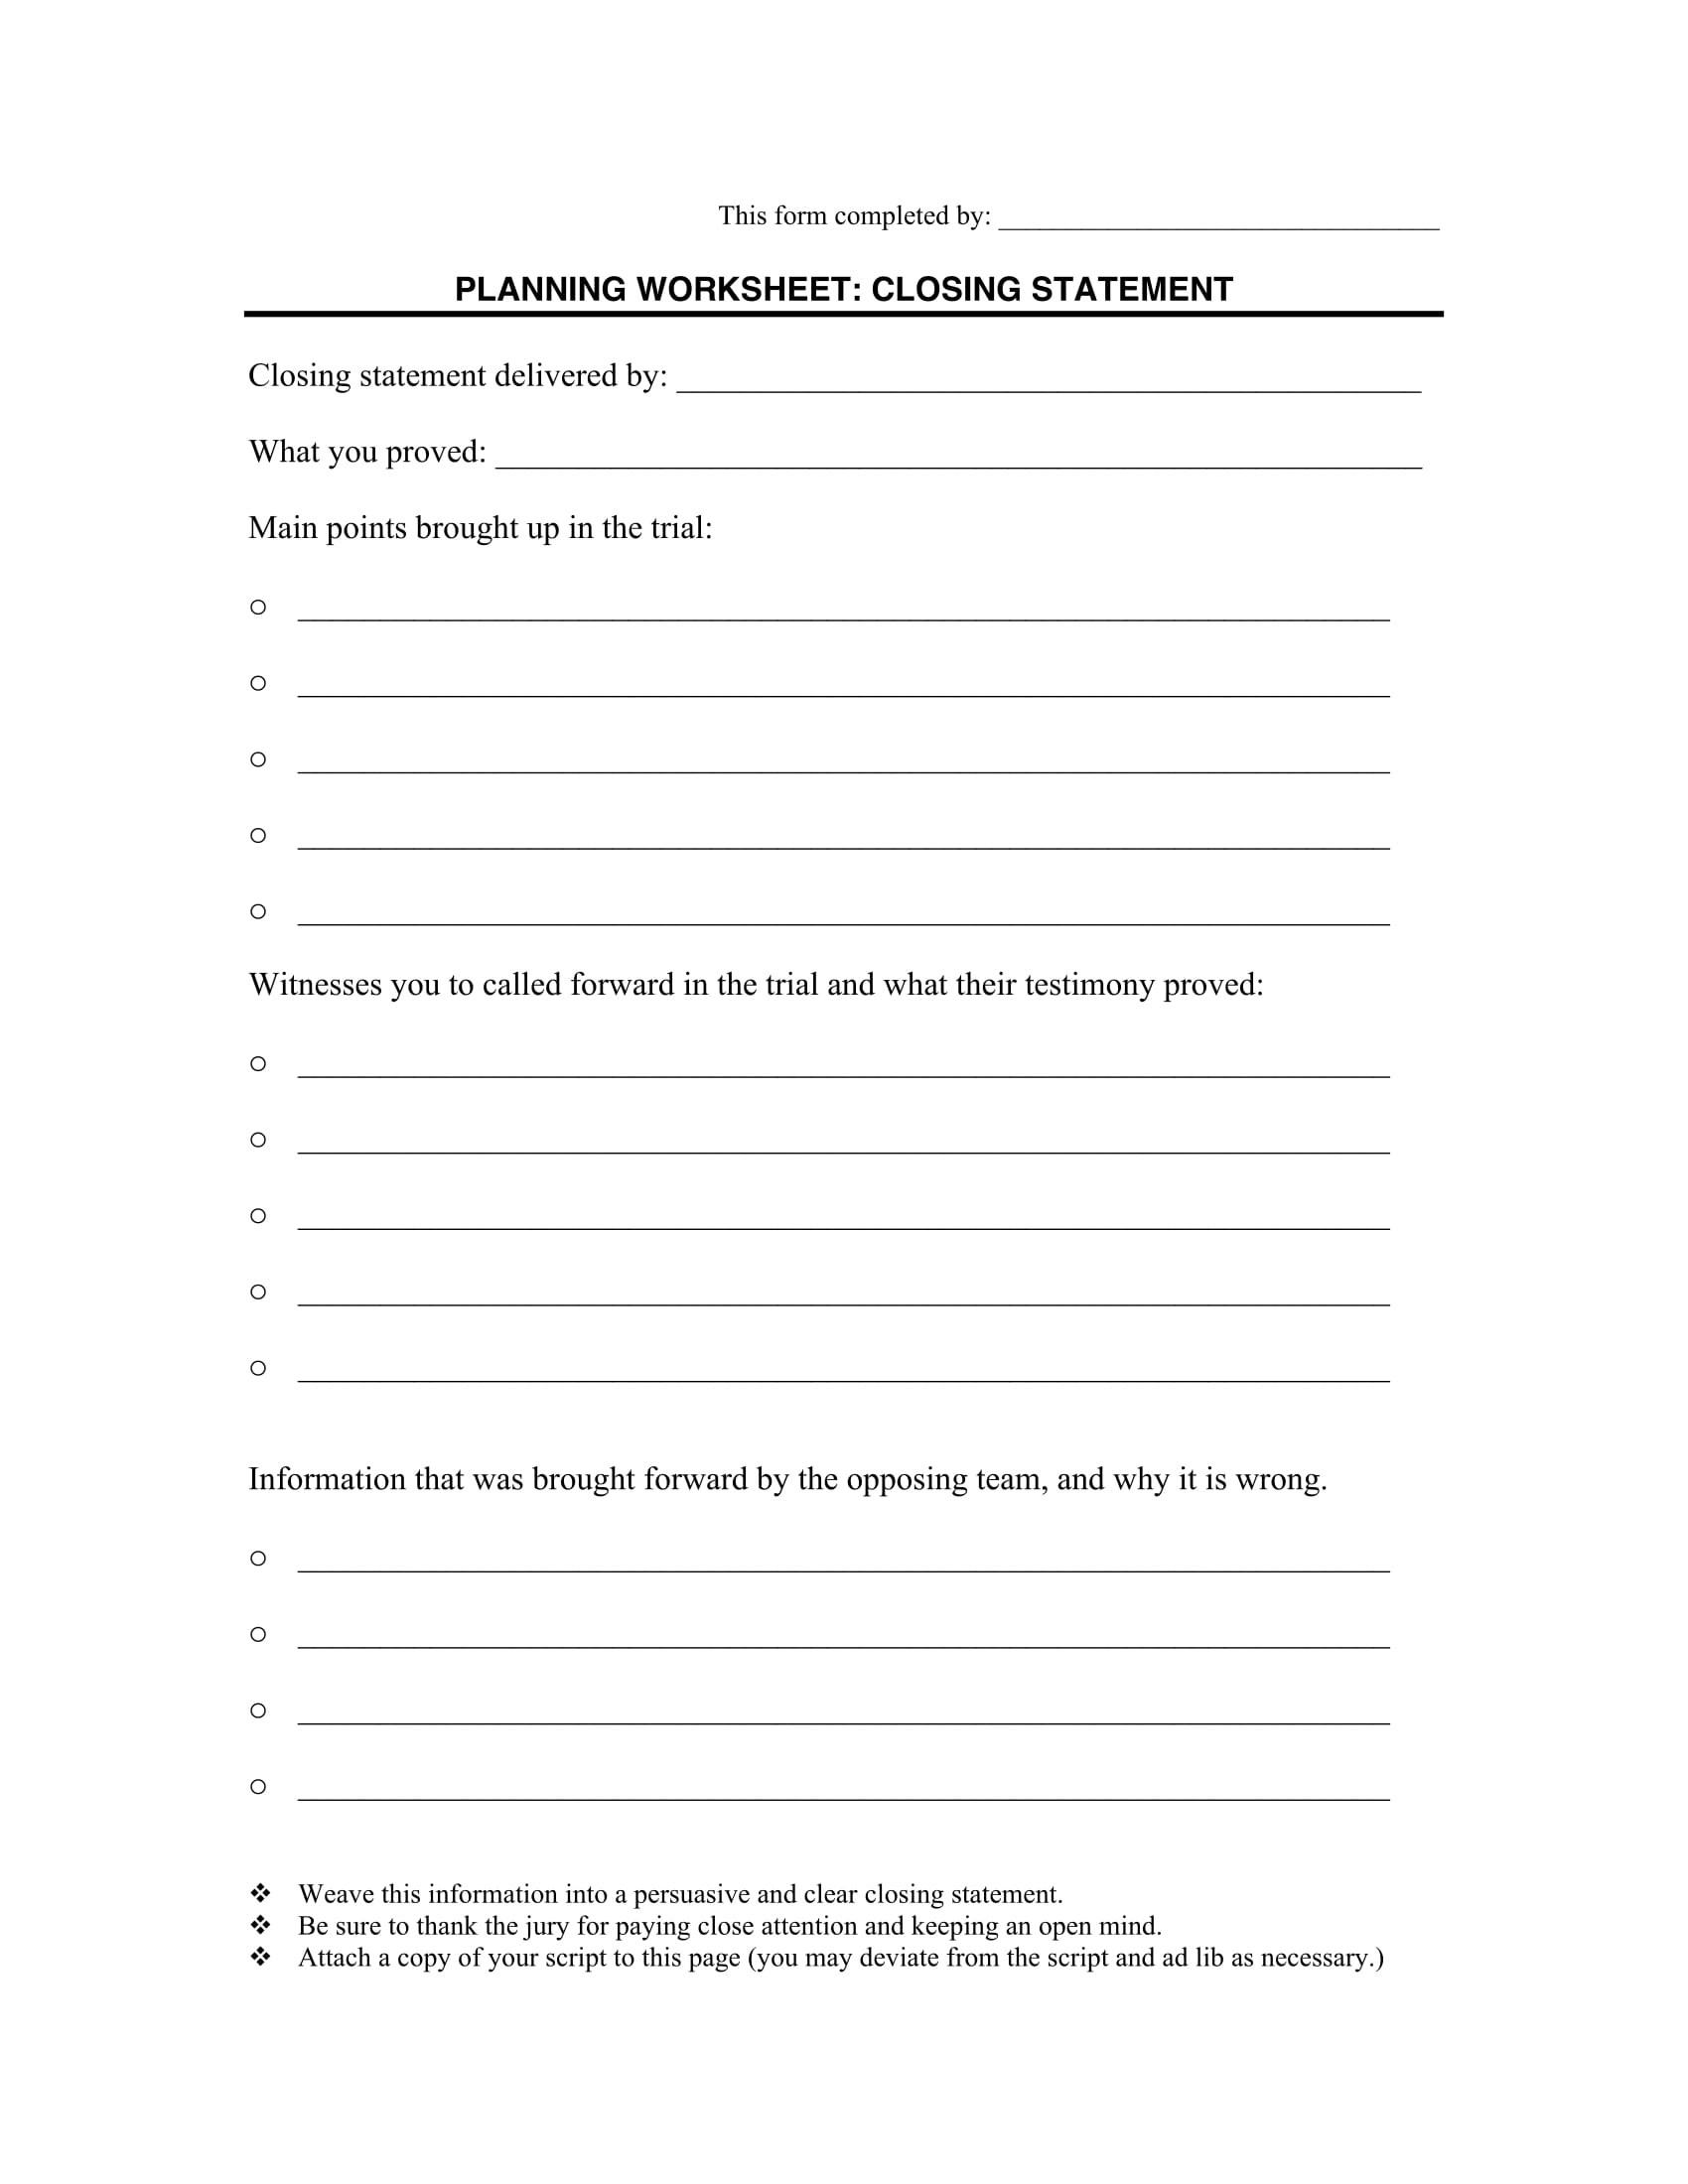 14 Closing Statement Forms